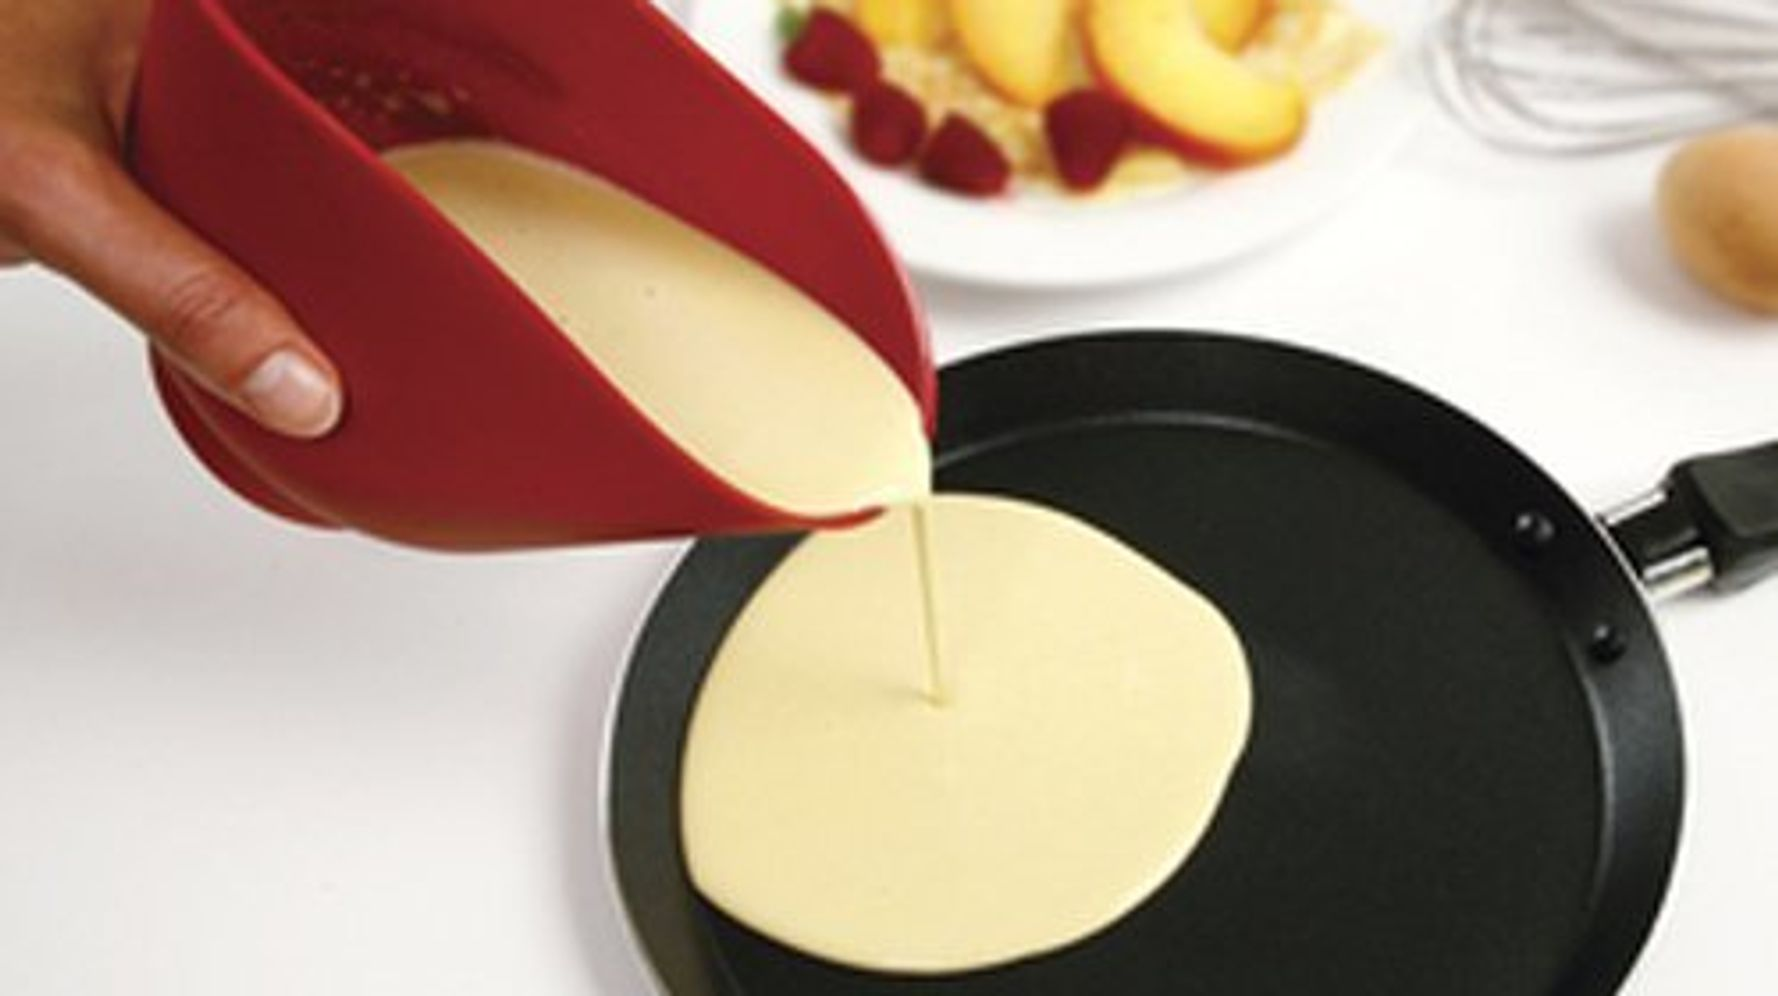 These 12 Awesome Inventions Will Solve Your Kitchen Woes